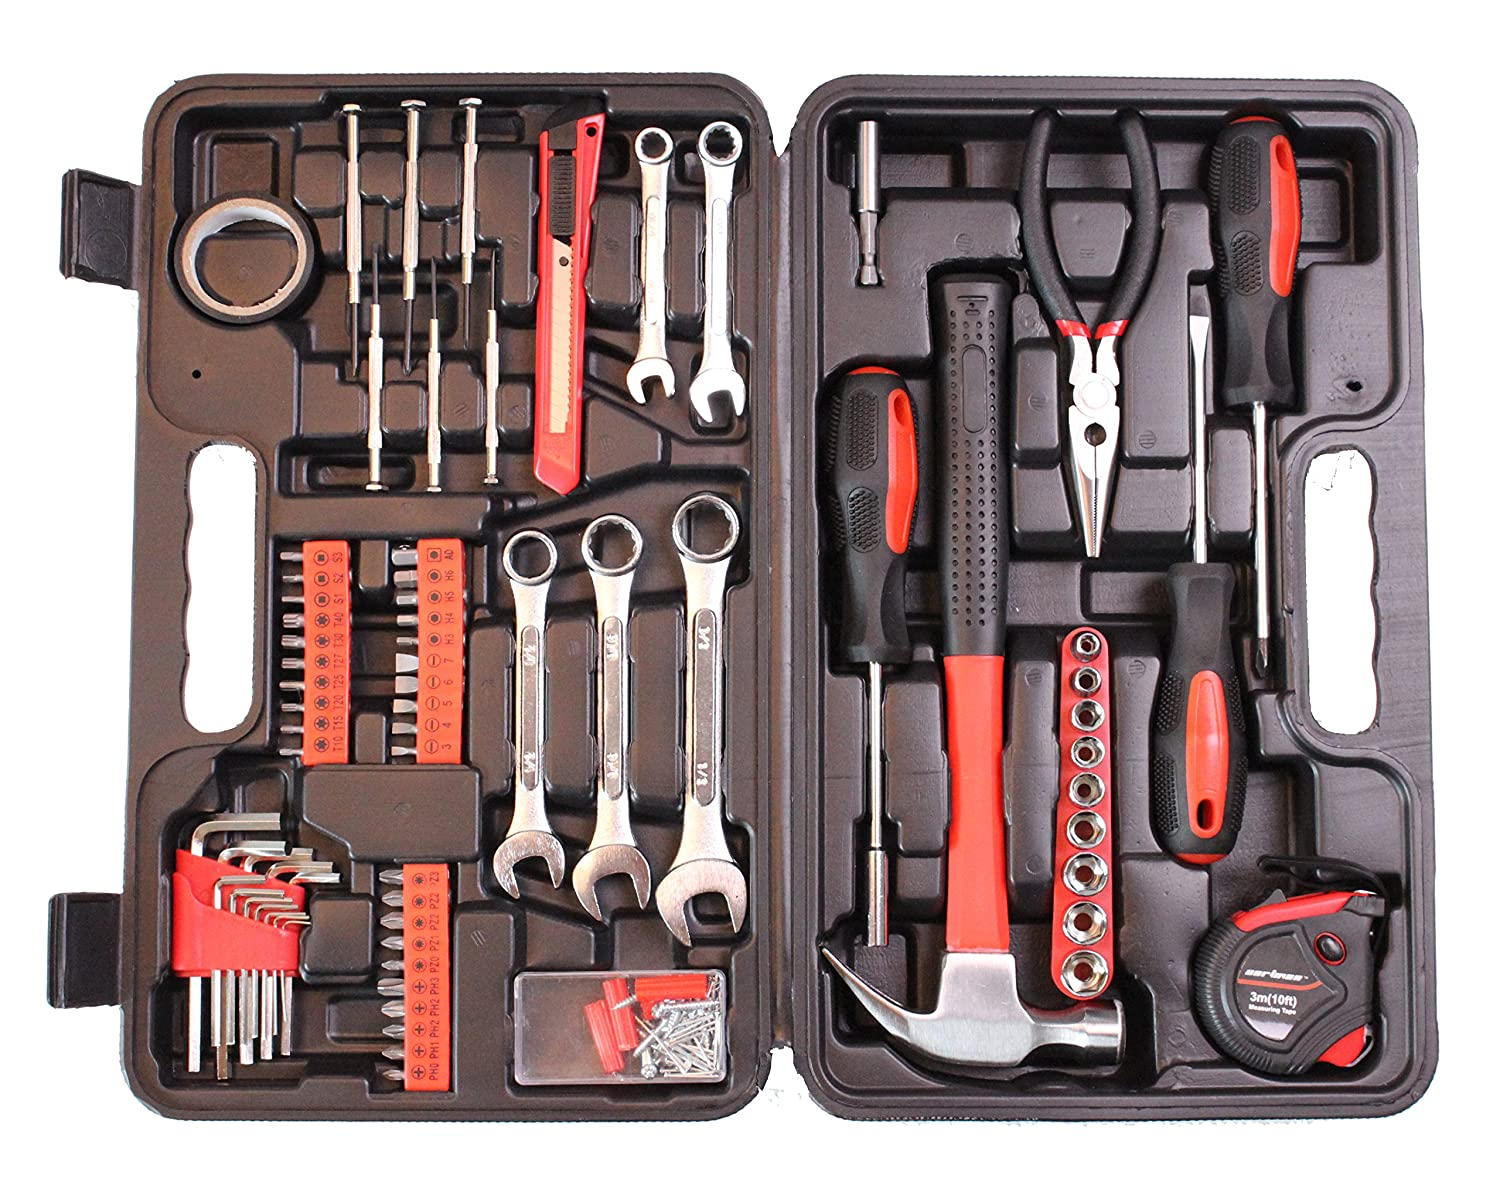 69f6b7fb91c Amazon.com  CARTMAN 148-Piece Tool Set - General Household Hand Tool Kit  with Plastic Toolbox Storage Case  Automotive